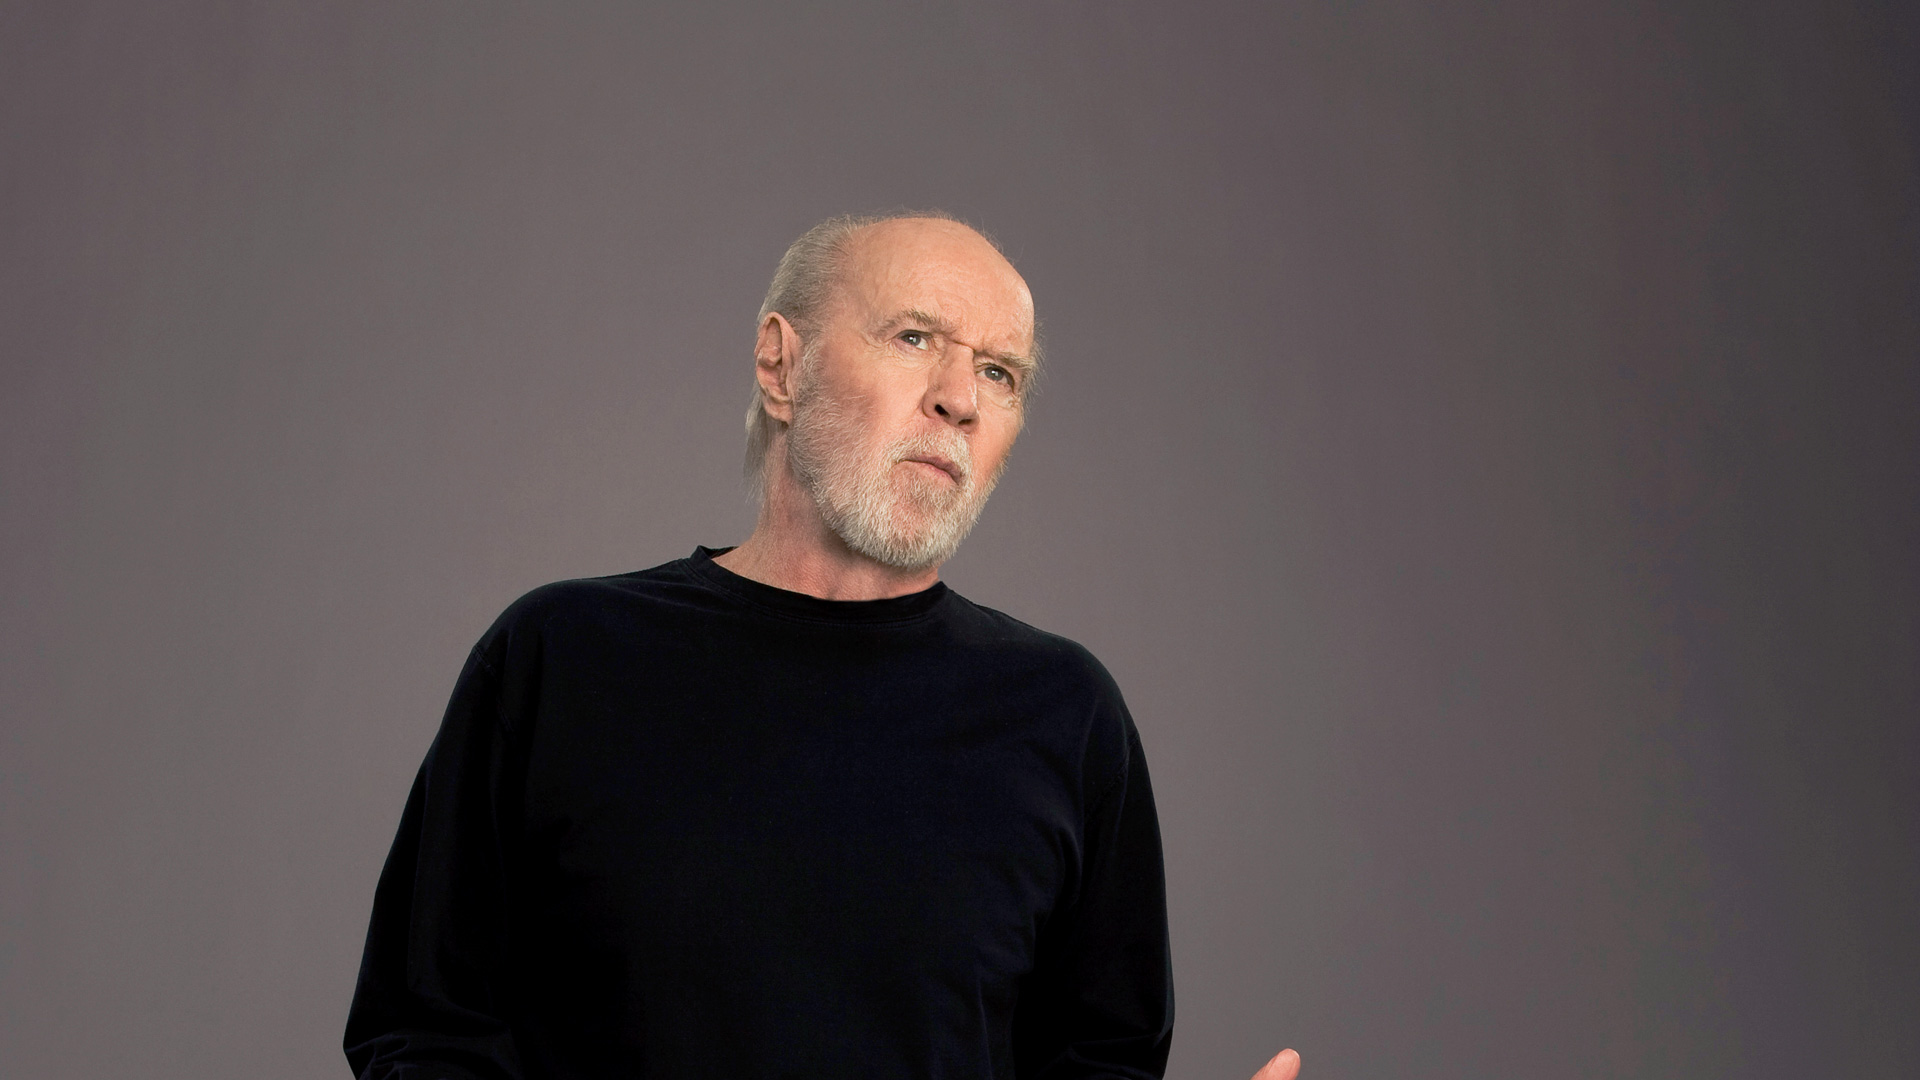 What George Carlin Can Teach Us About Joking About Tragedy